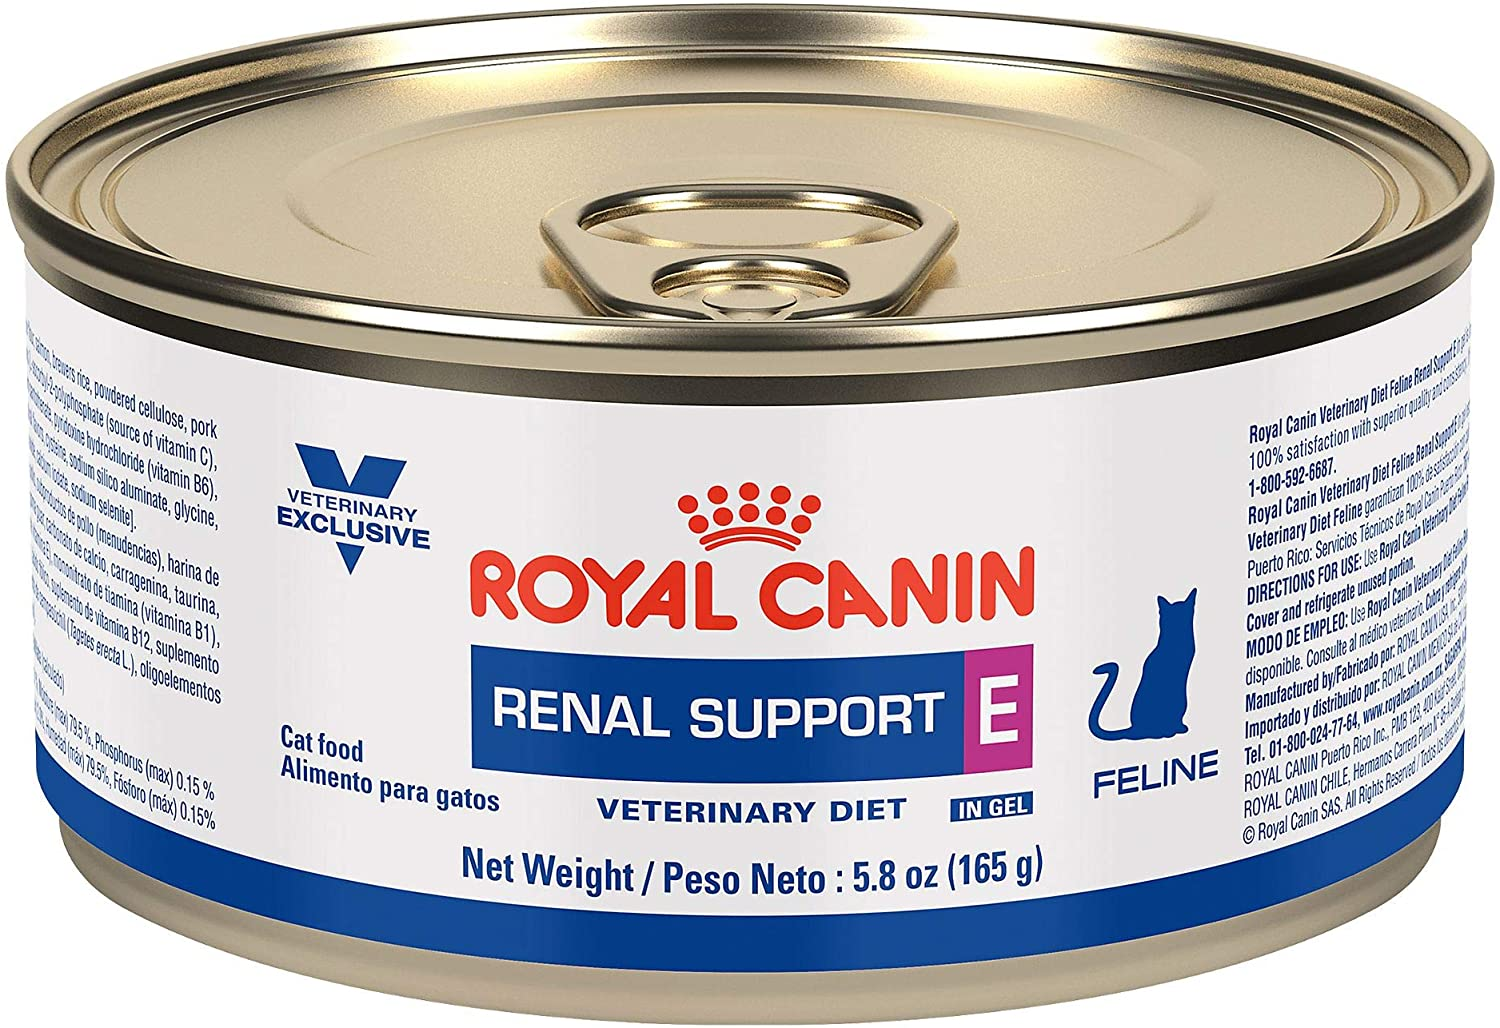 Royal Canin Veterinary Diet Feline Renal Support E Loaf In Sauce Canned Cat Food, 5.8 oz